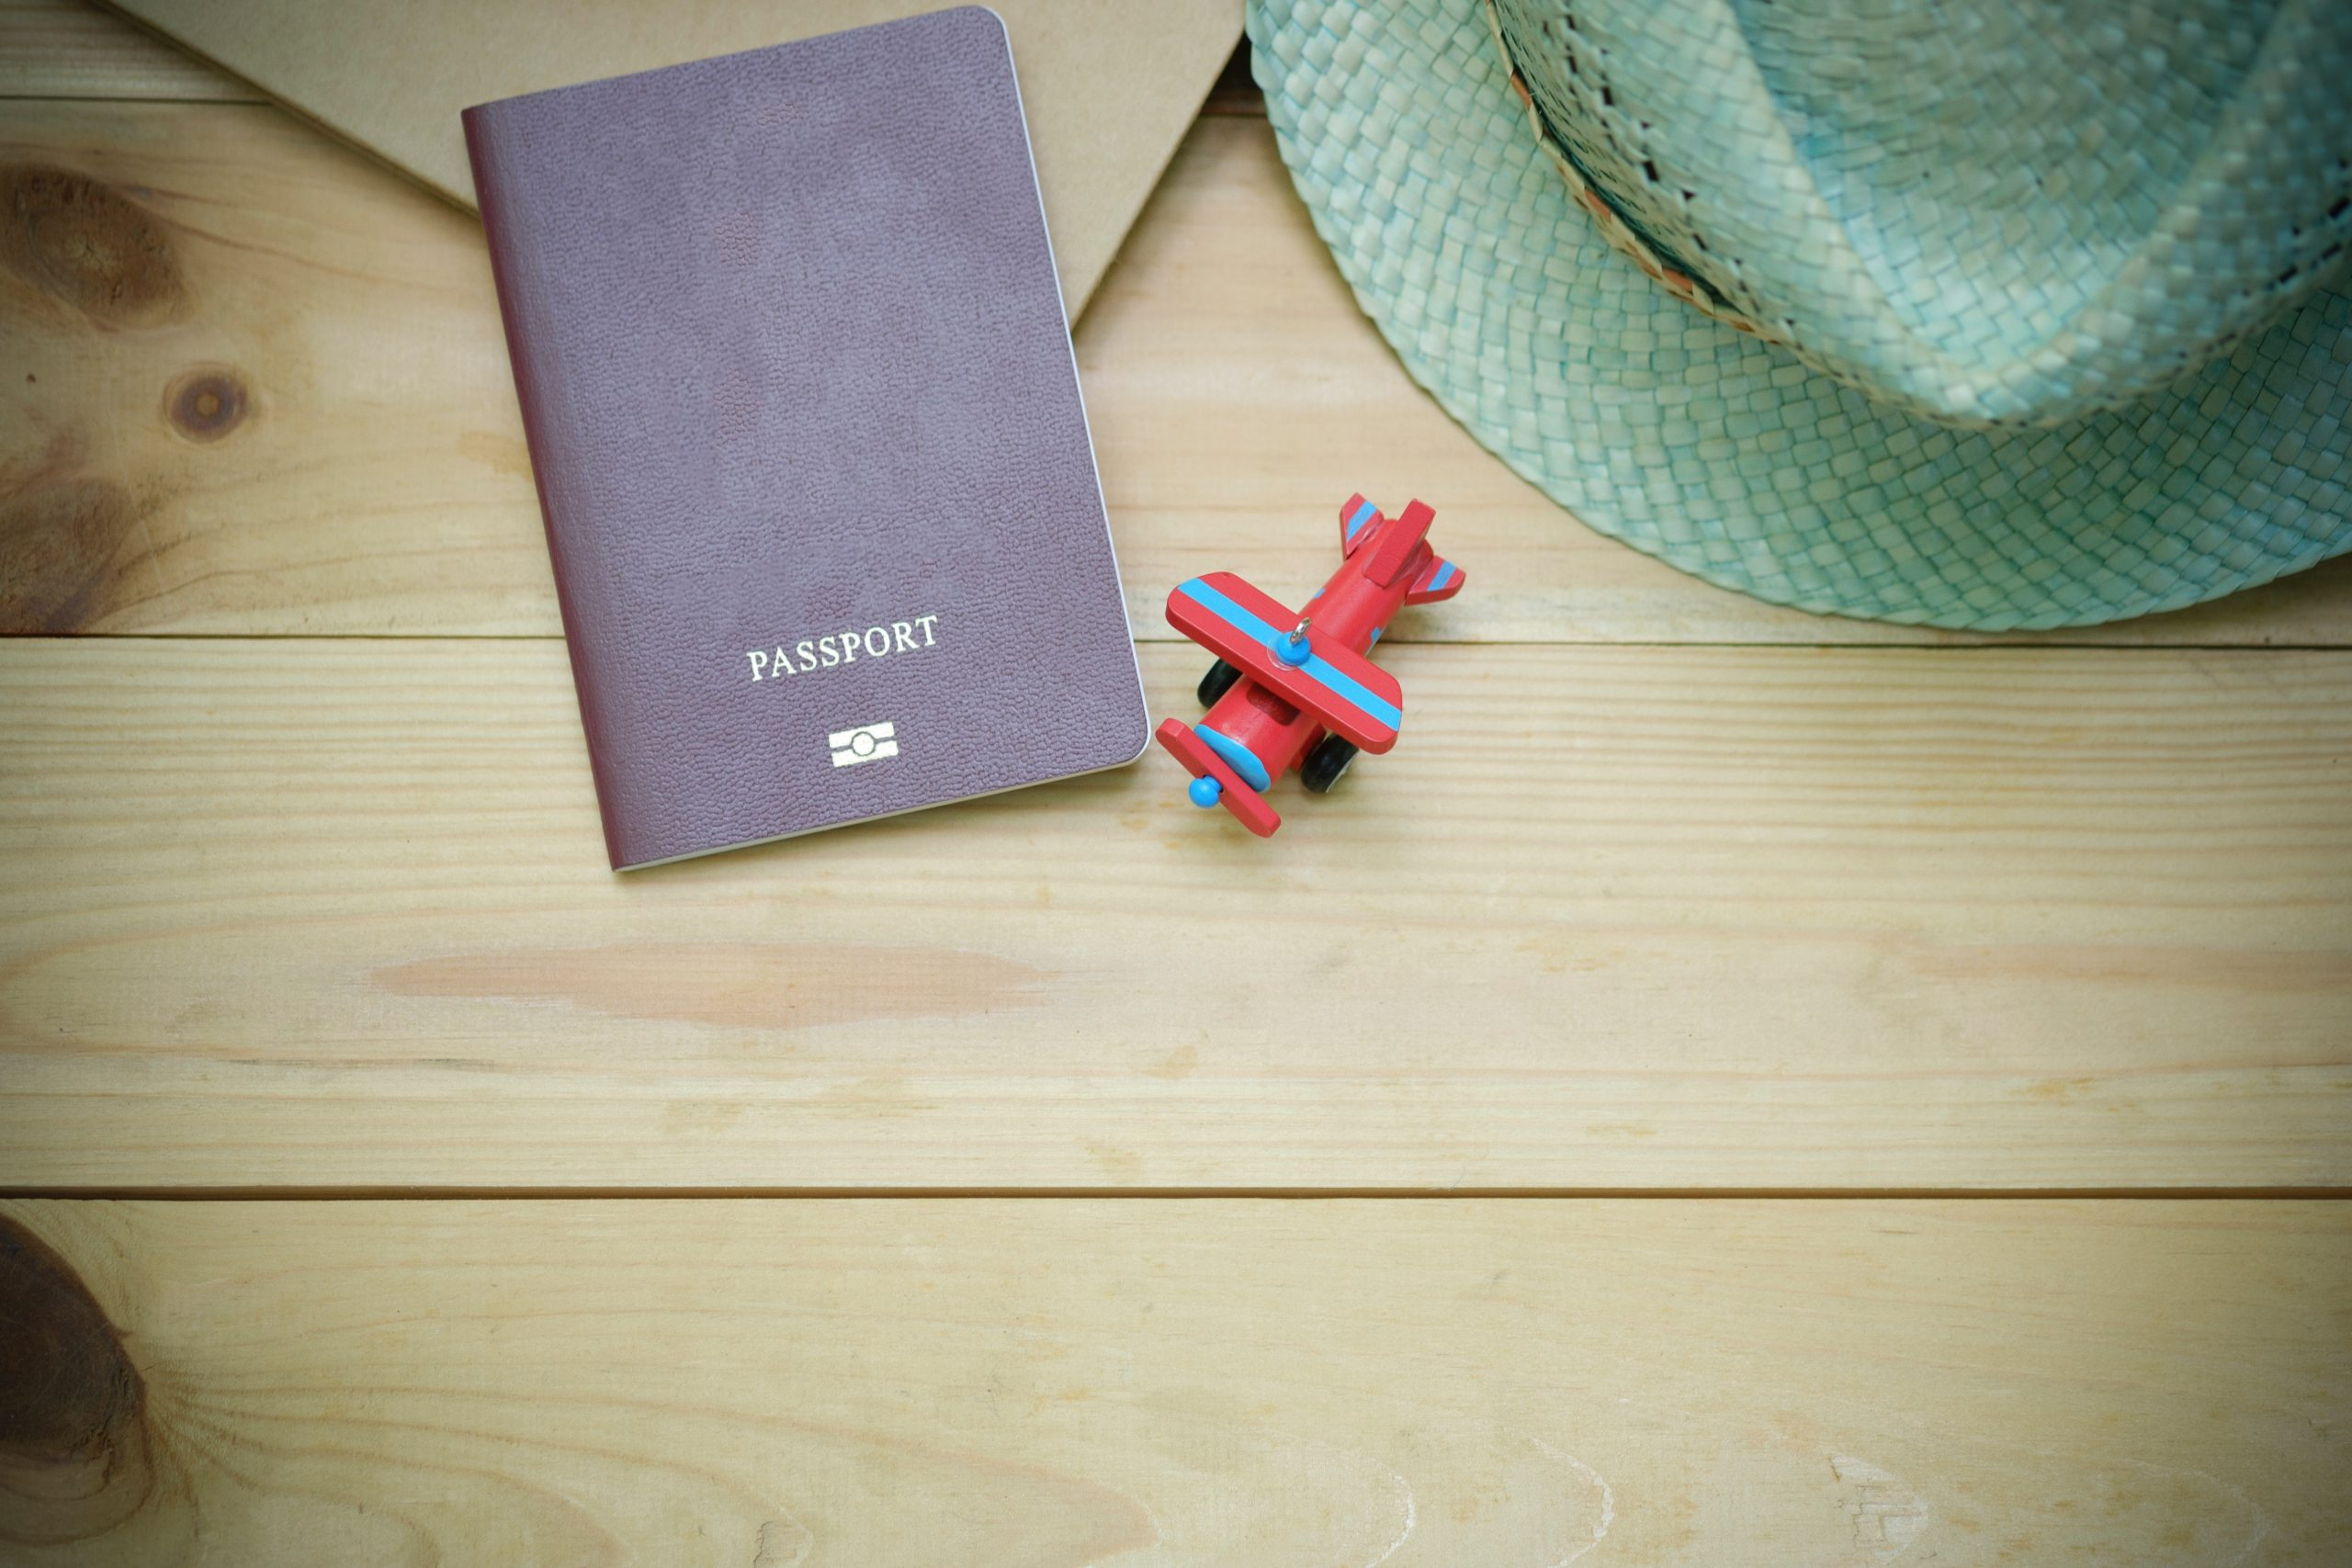 Passport on a table